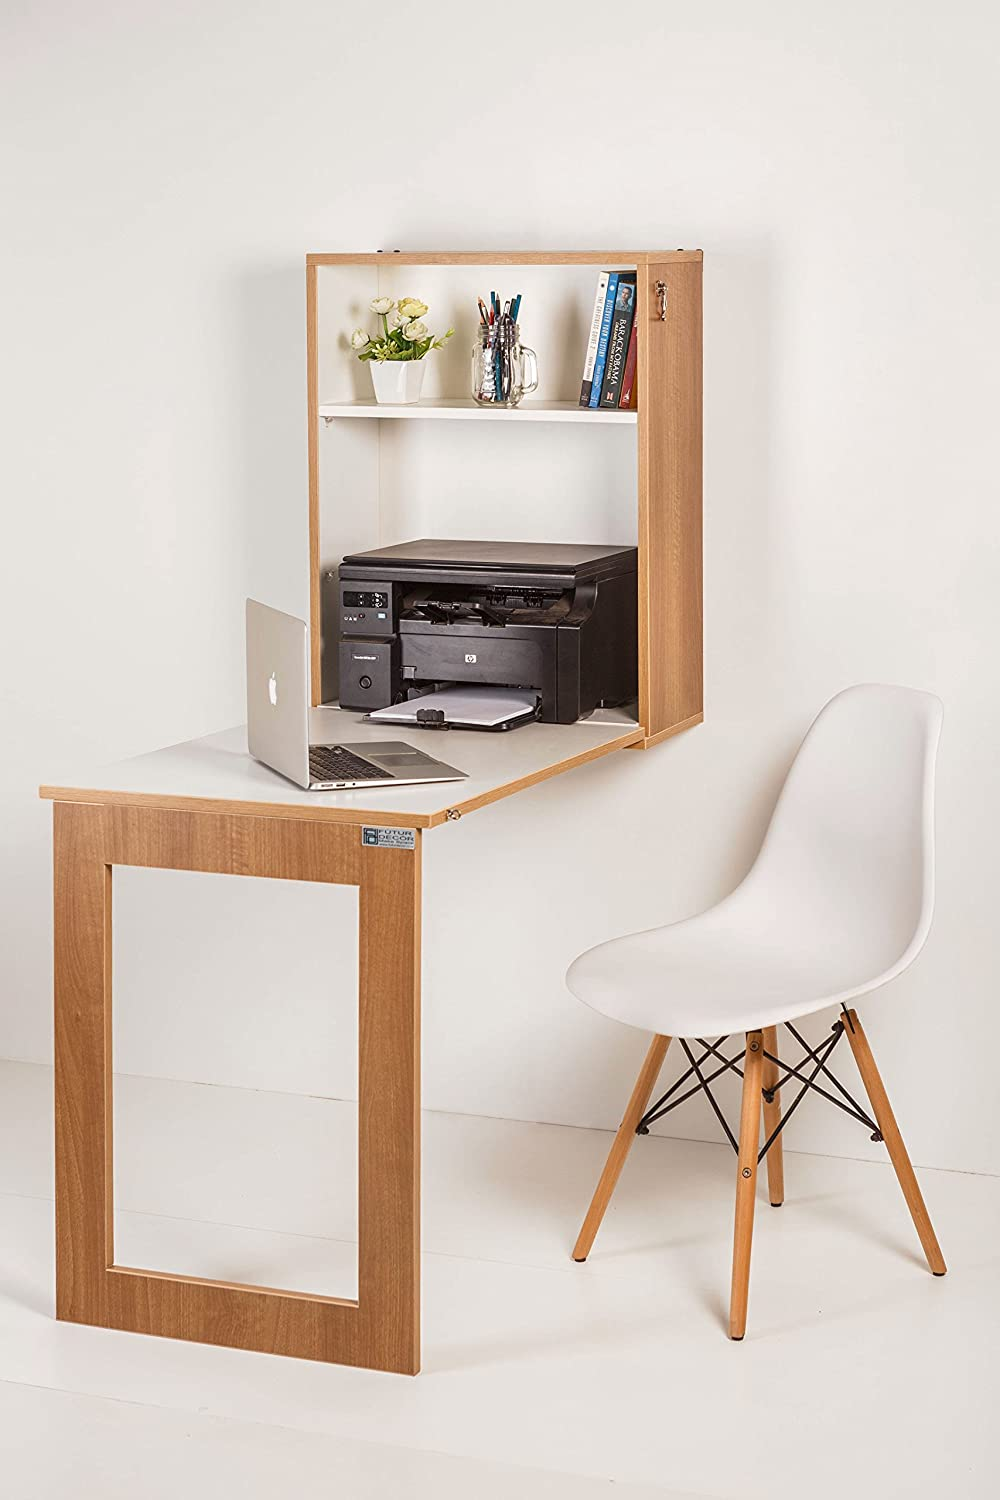 shipping monitor today home free desk work computer pc product office printer furniture overstock garden walnut shelf costway station